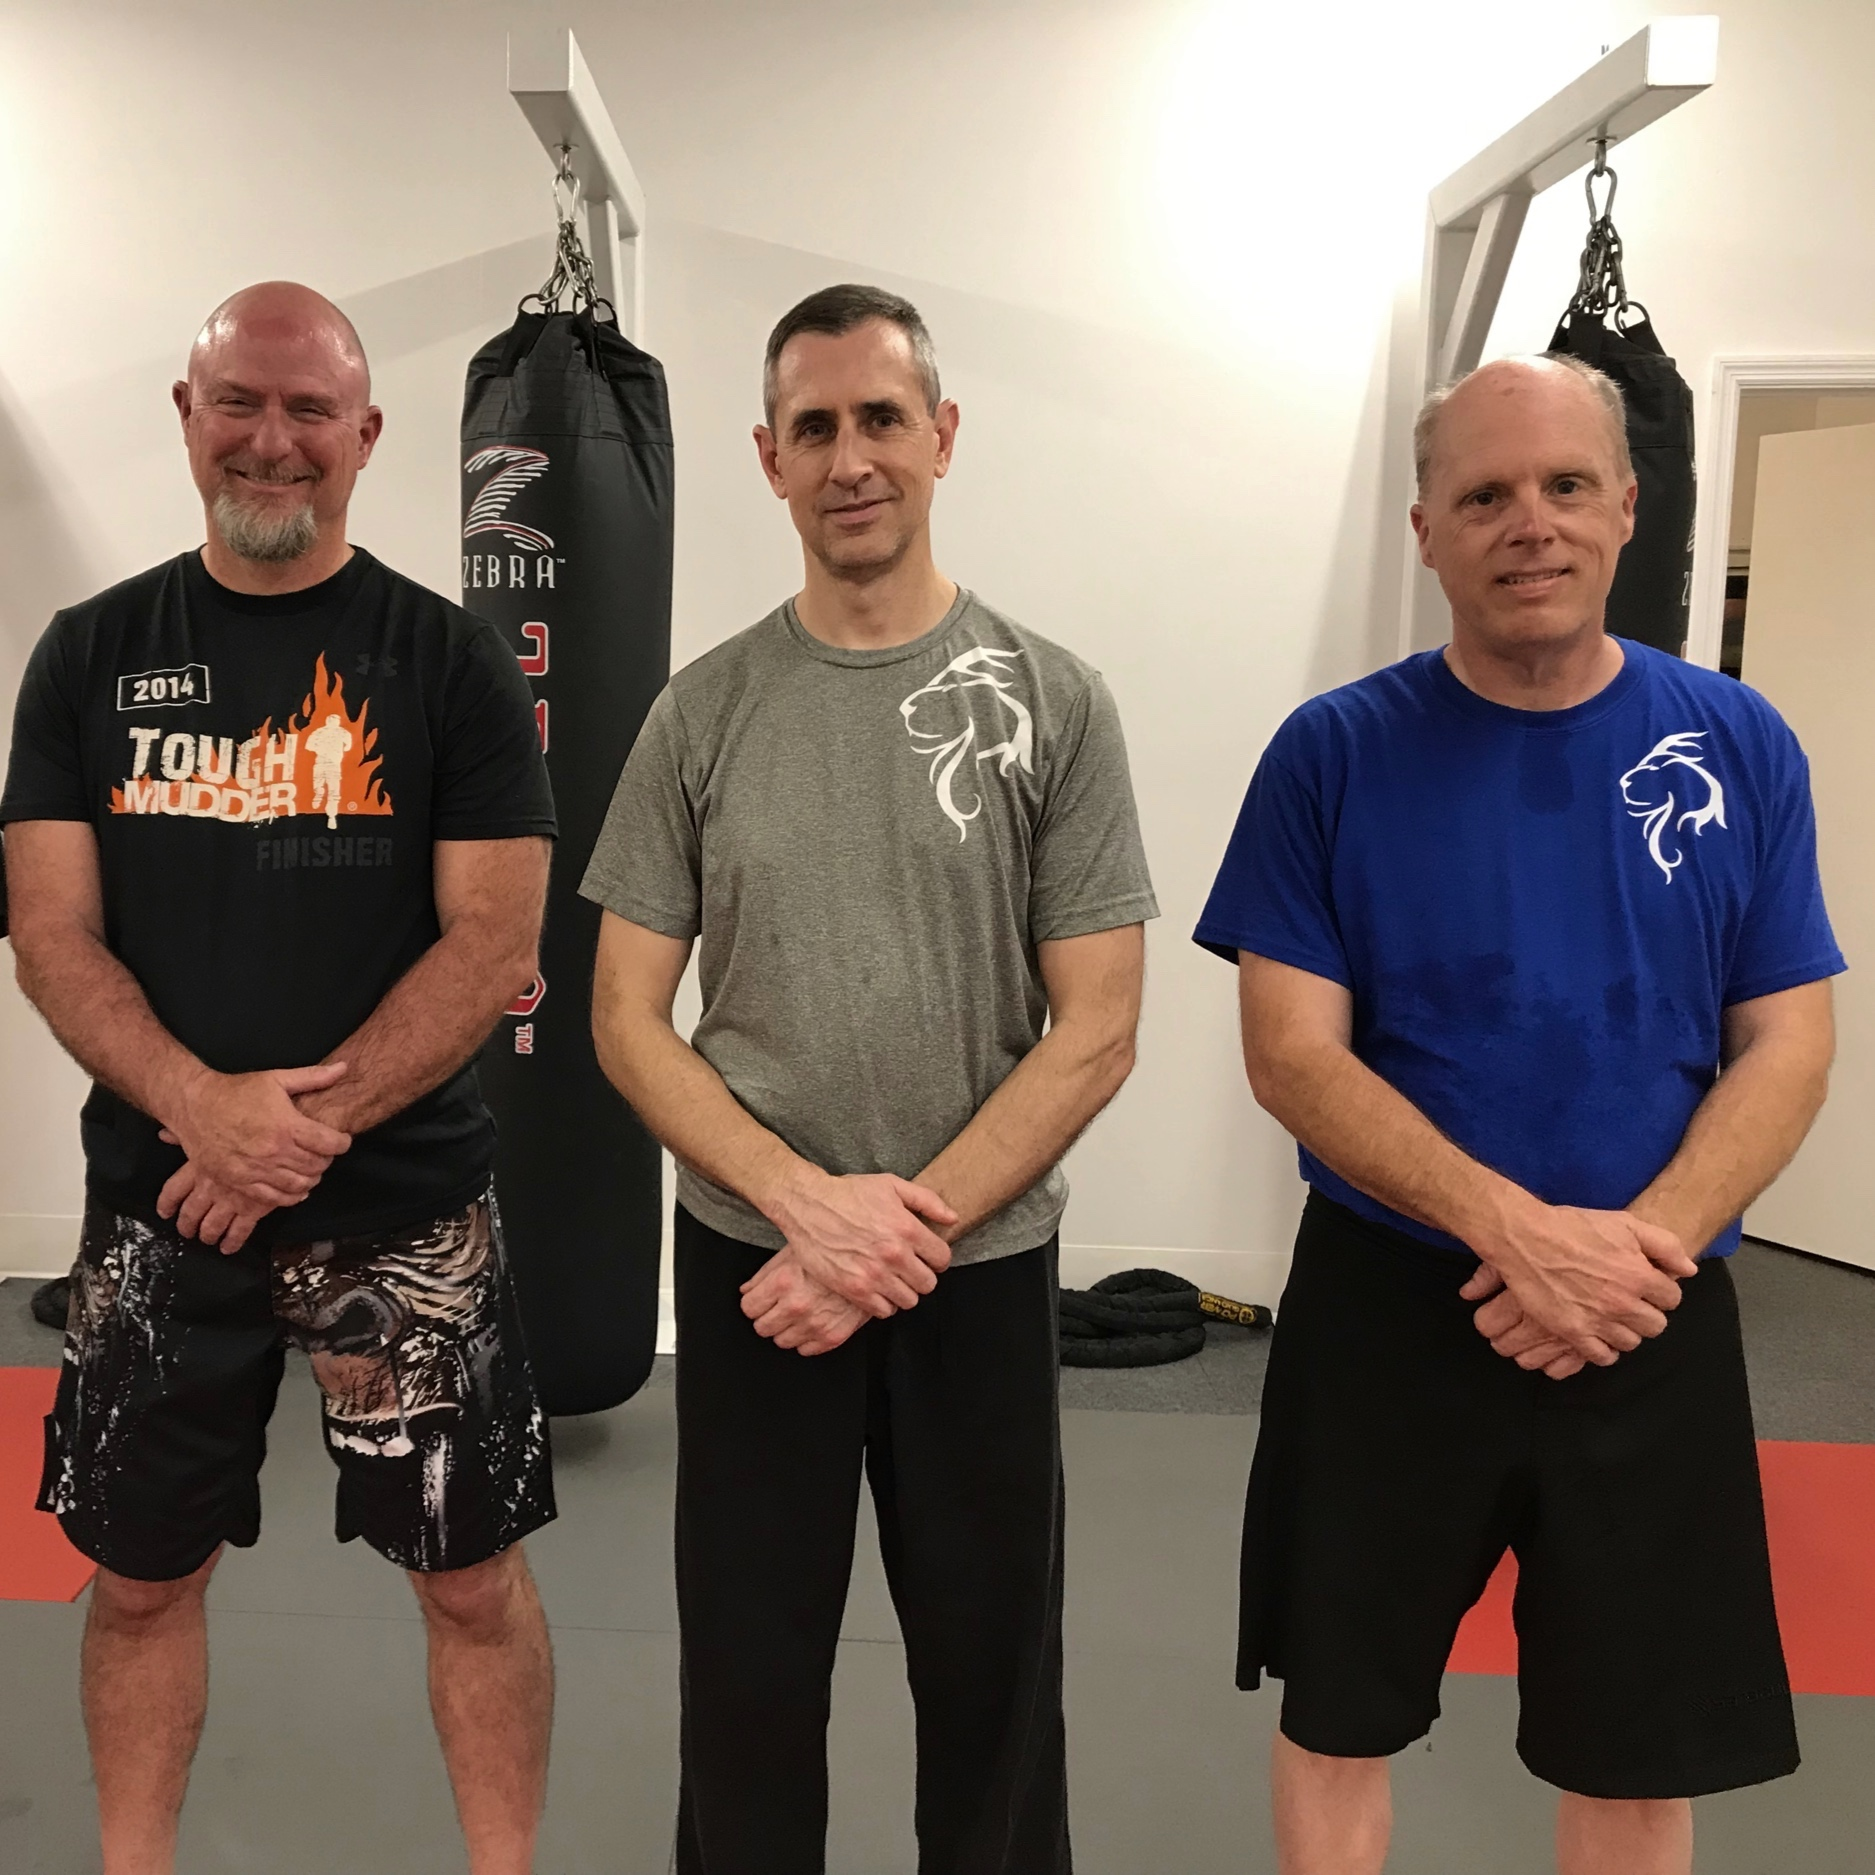 ADULTS CLASSES - KICKBOXING + BRAZILIAN JIU JITSU